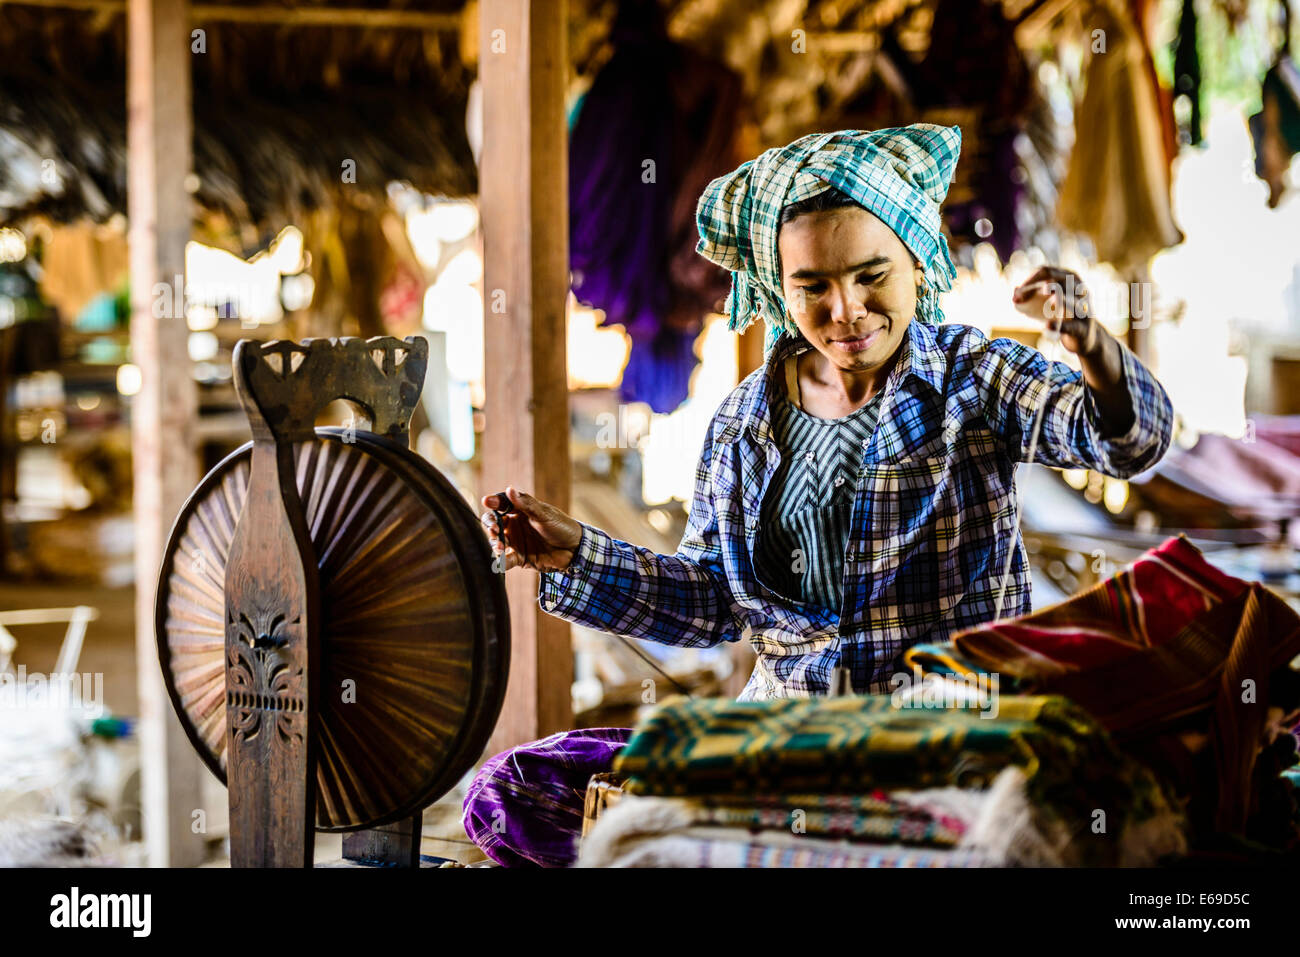 Asian woman spinning thread Photo Stock